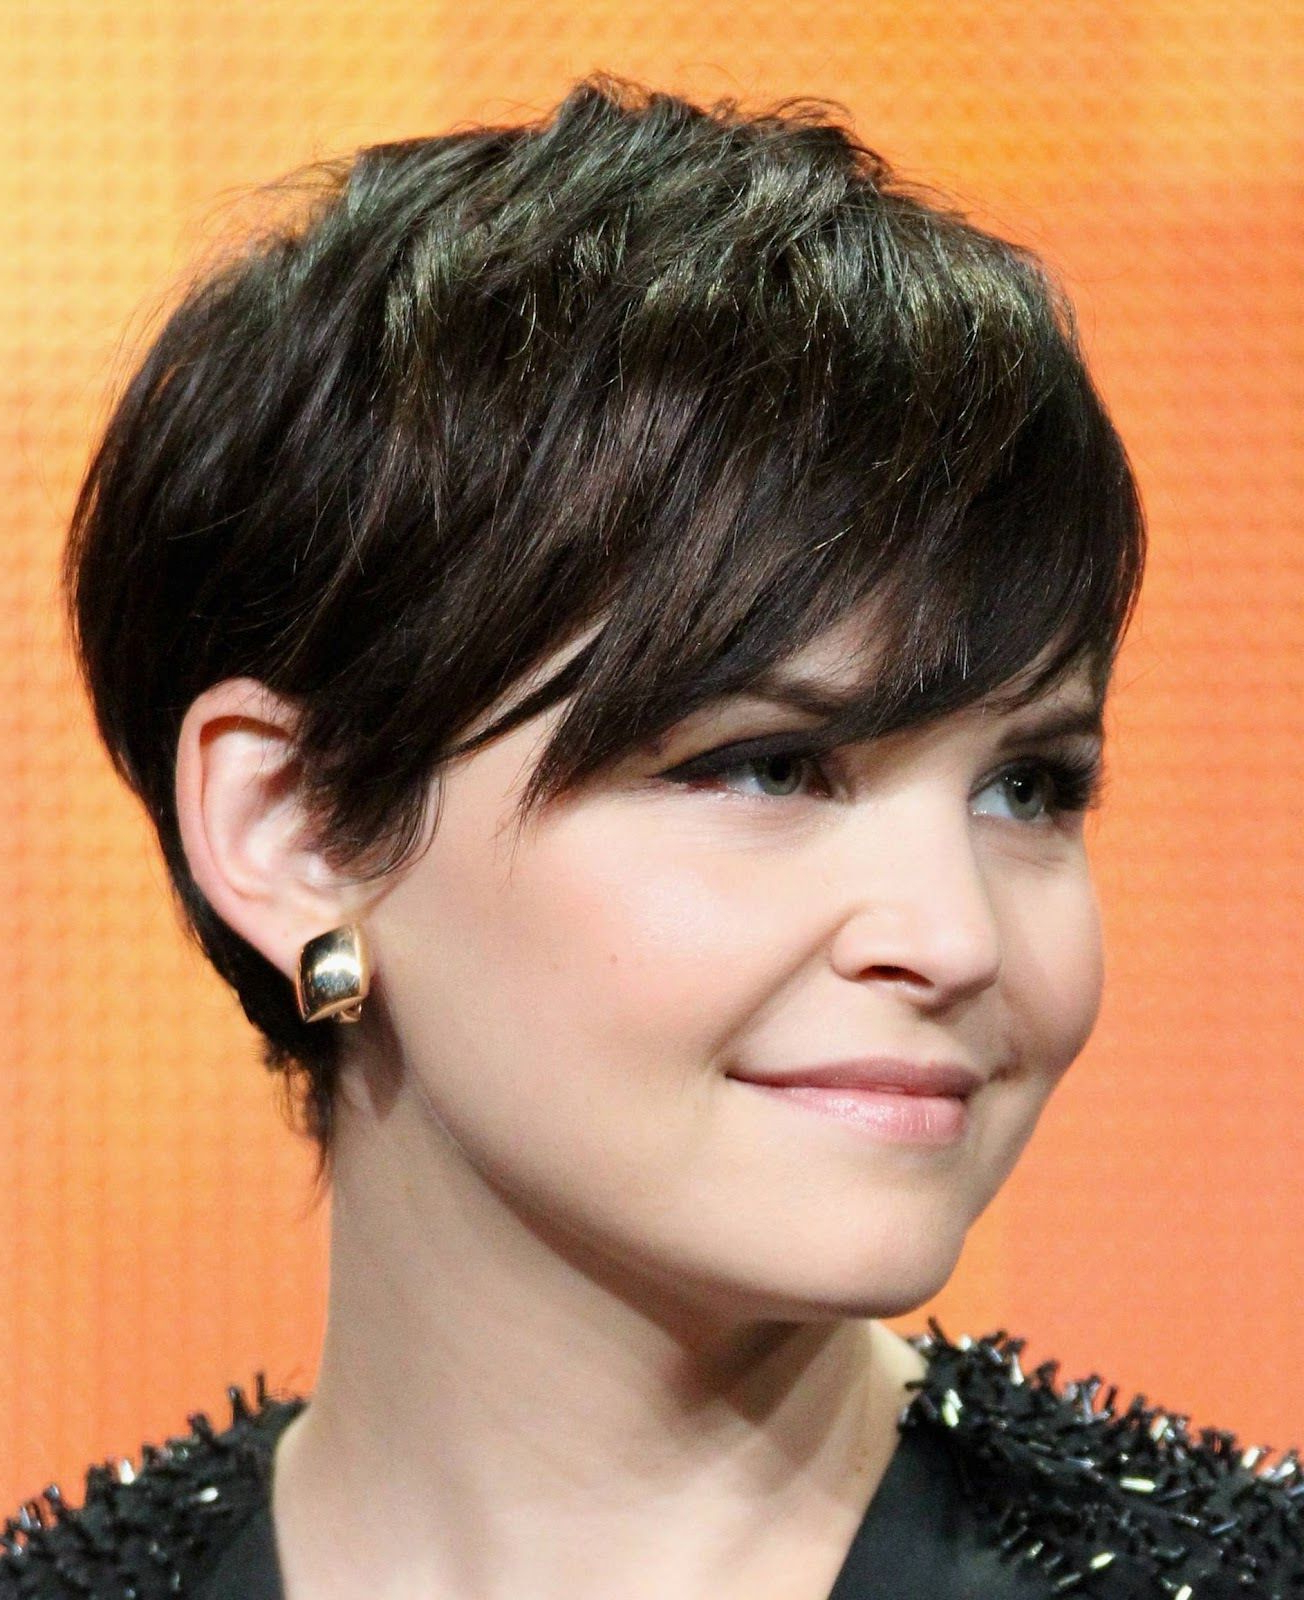 20 Stunning Looks With Pixie Cut For Round Face In 2018   Haircuts Within Edgy Short Haircuts For Round Faces (View 10 of 25)